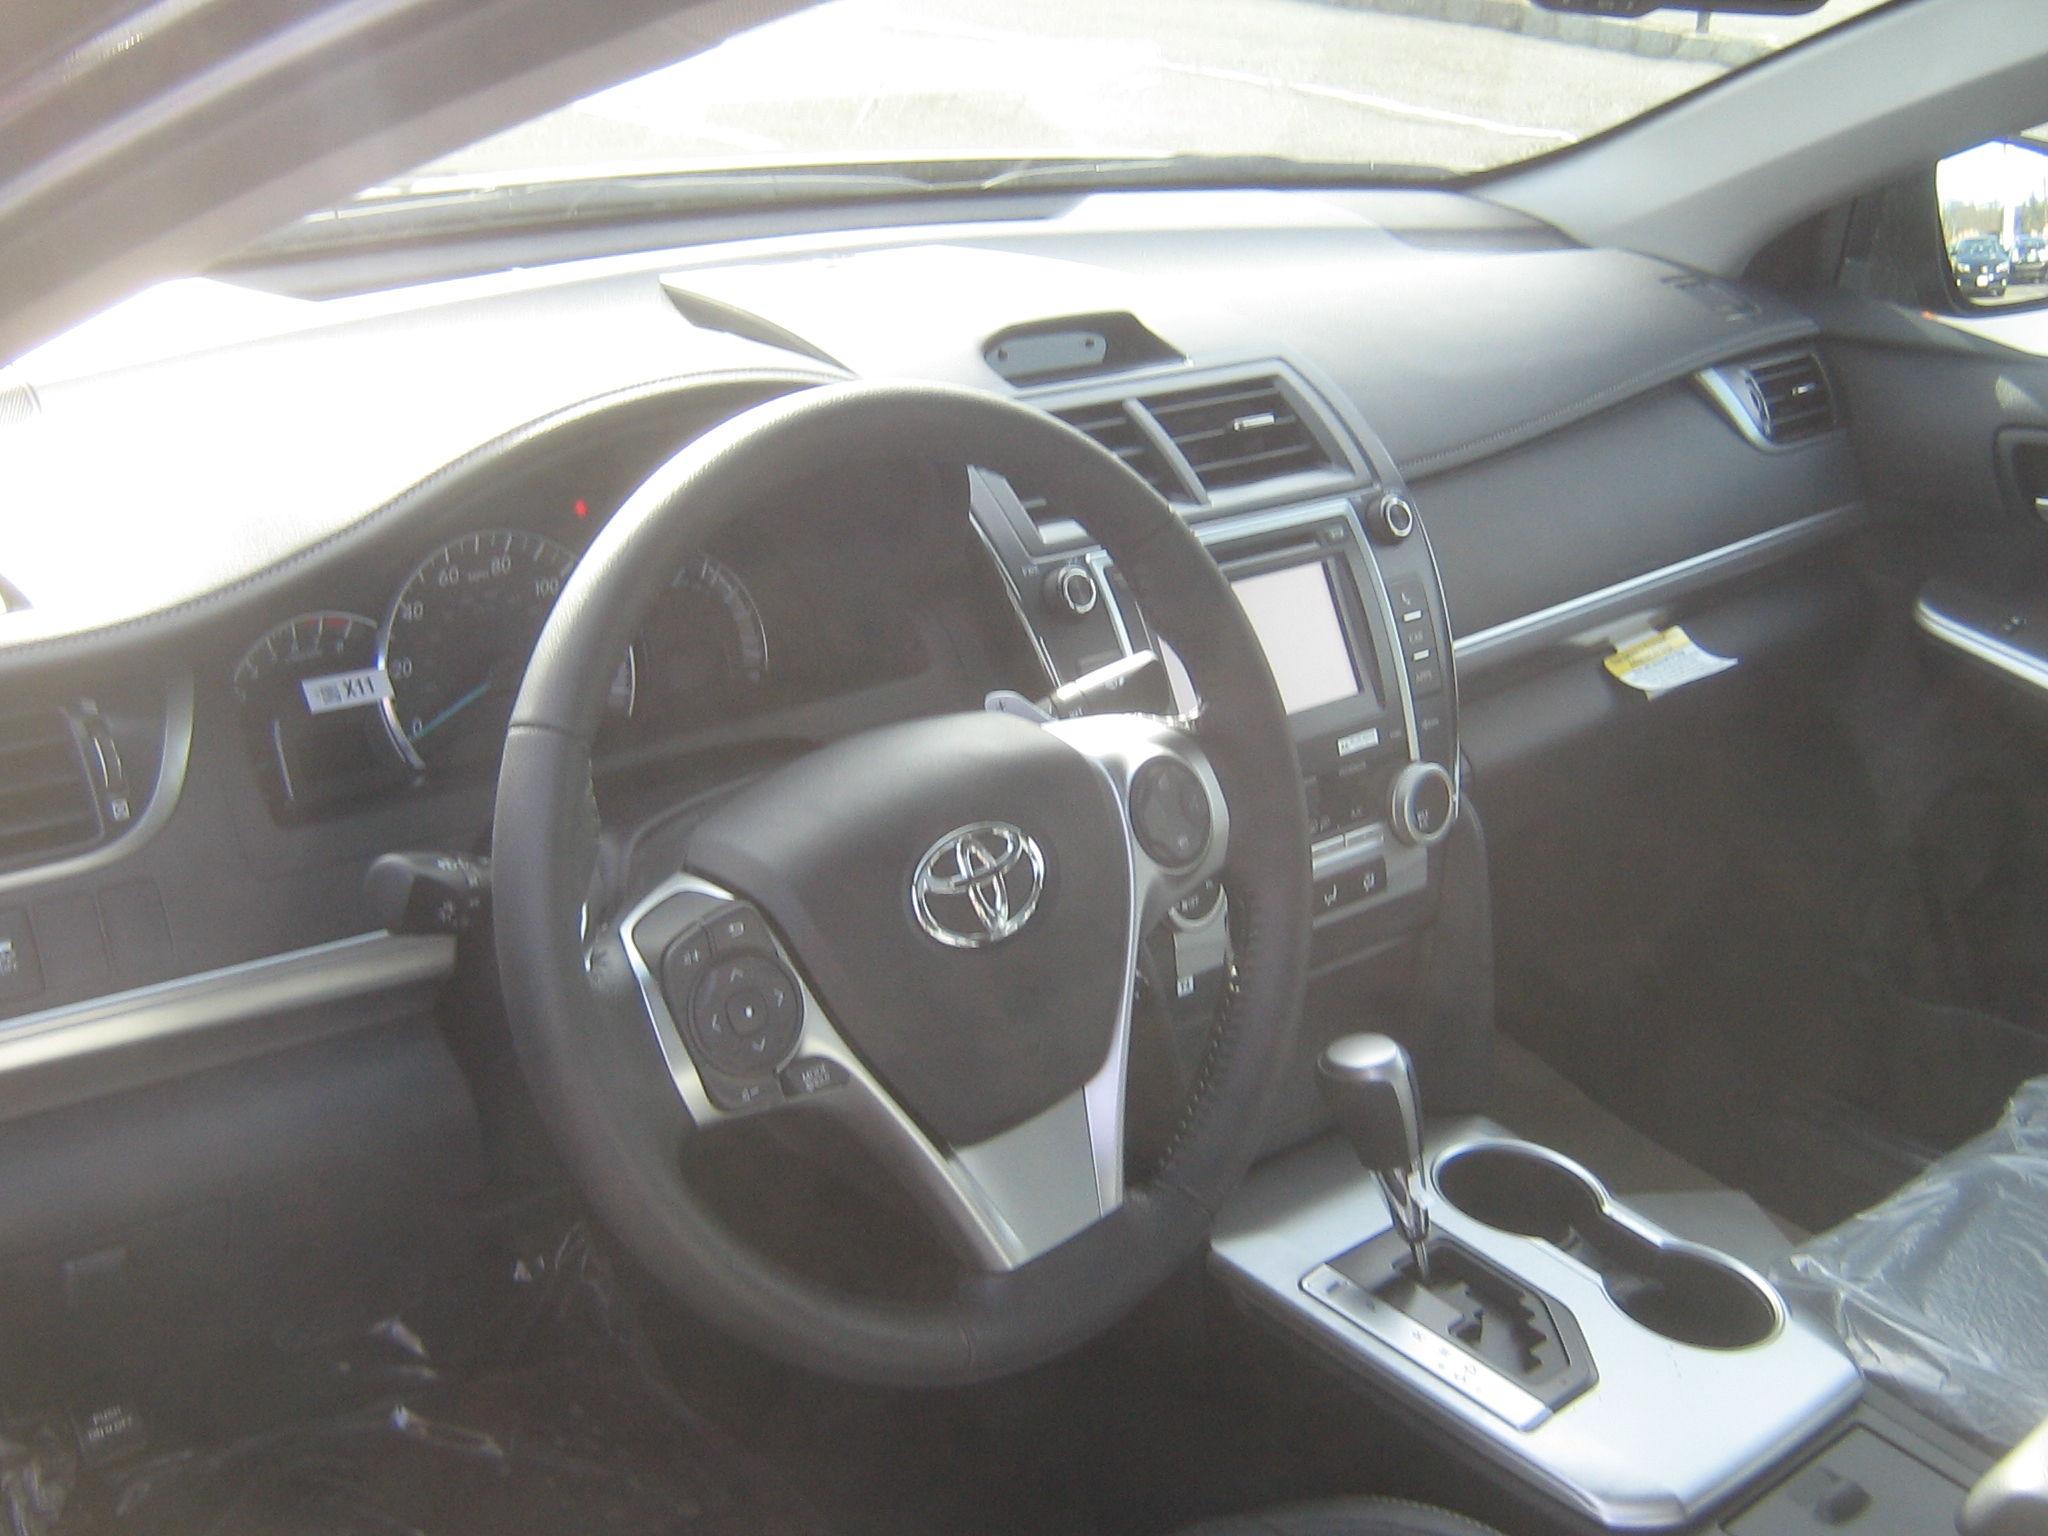 toyota camry reviews sedan motor cars interior dashboard trend and rating hybrid